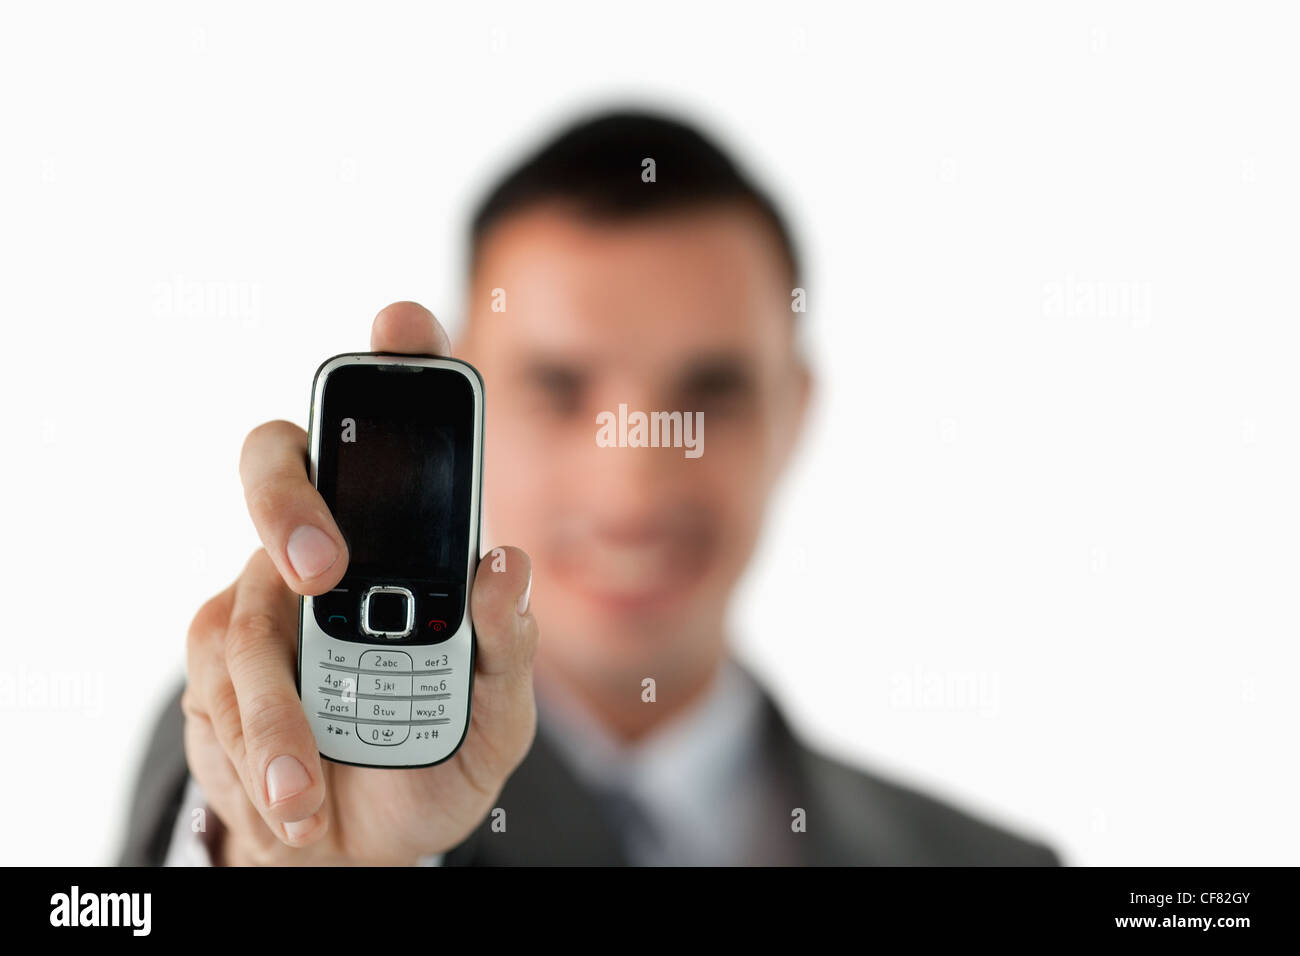 Close up of phone being shown by businessman - Stock Image